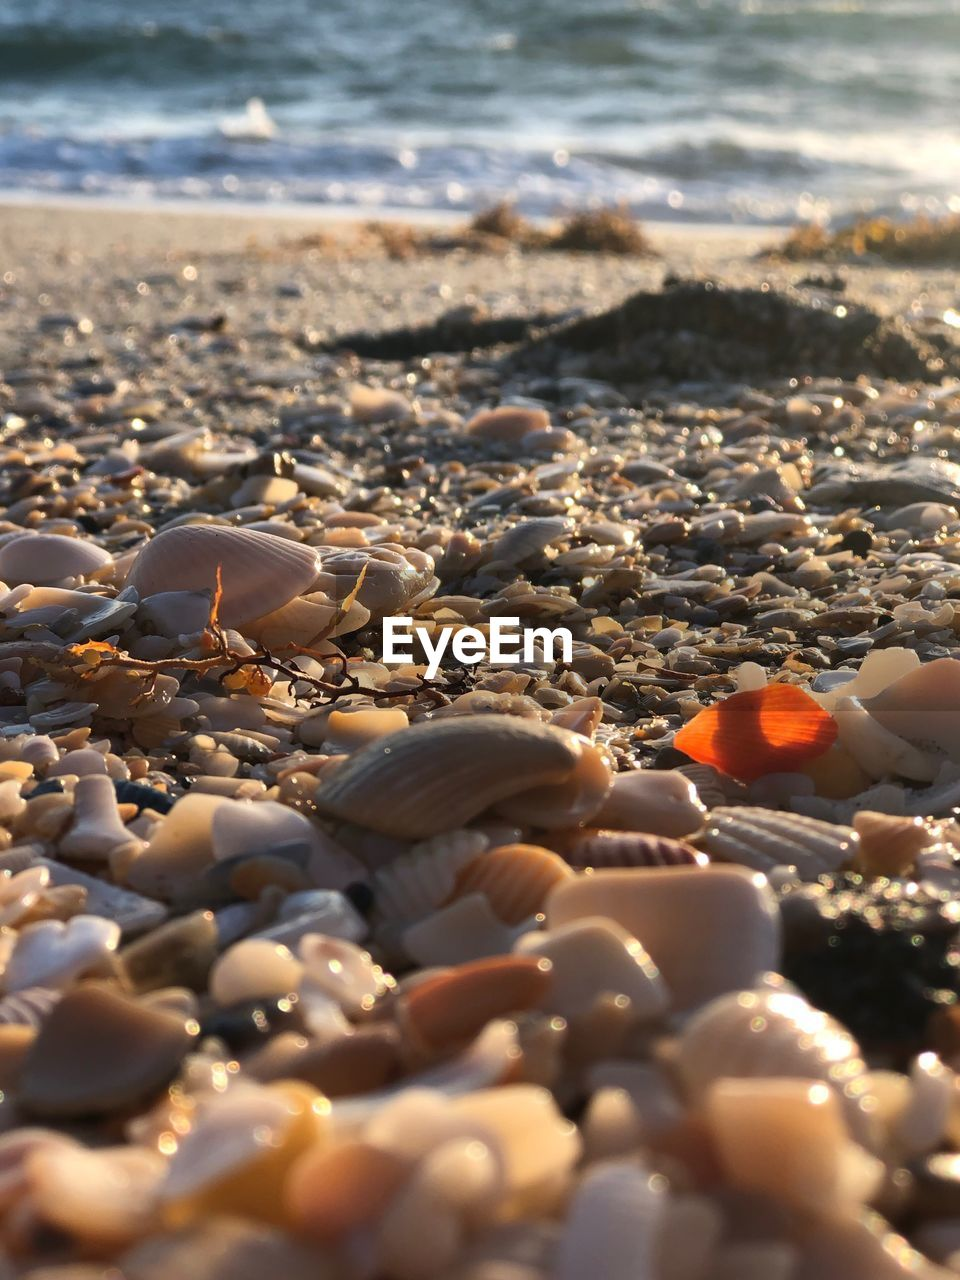 beach, land, sea, water, sand, nature, no people, selective focus, shell, pebble, day, sunlight, stone, solid, stone - object, rock, close-up, surface level, beauty in nature, outdoors, marine, pollution